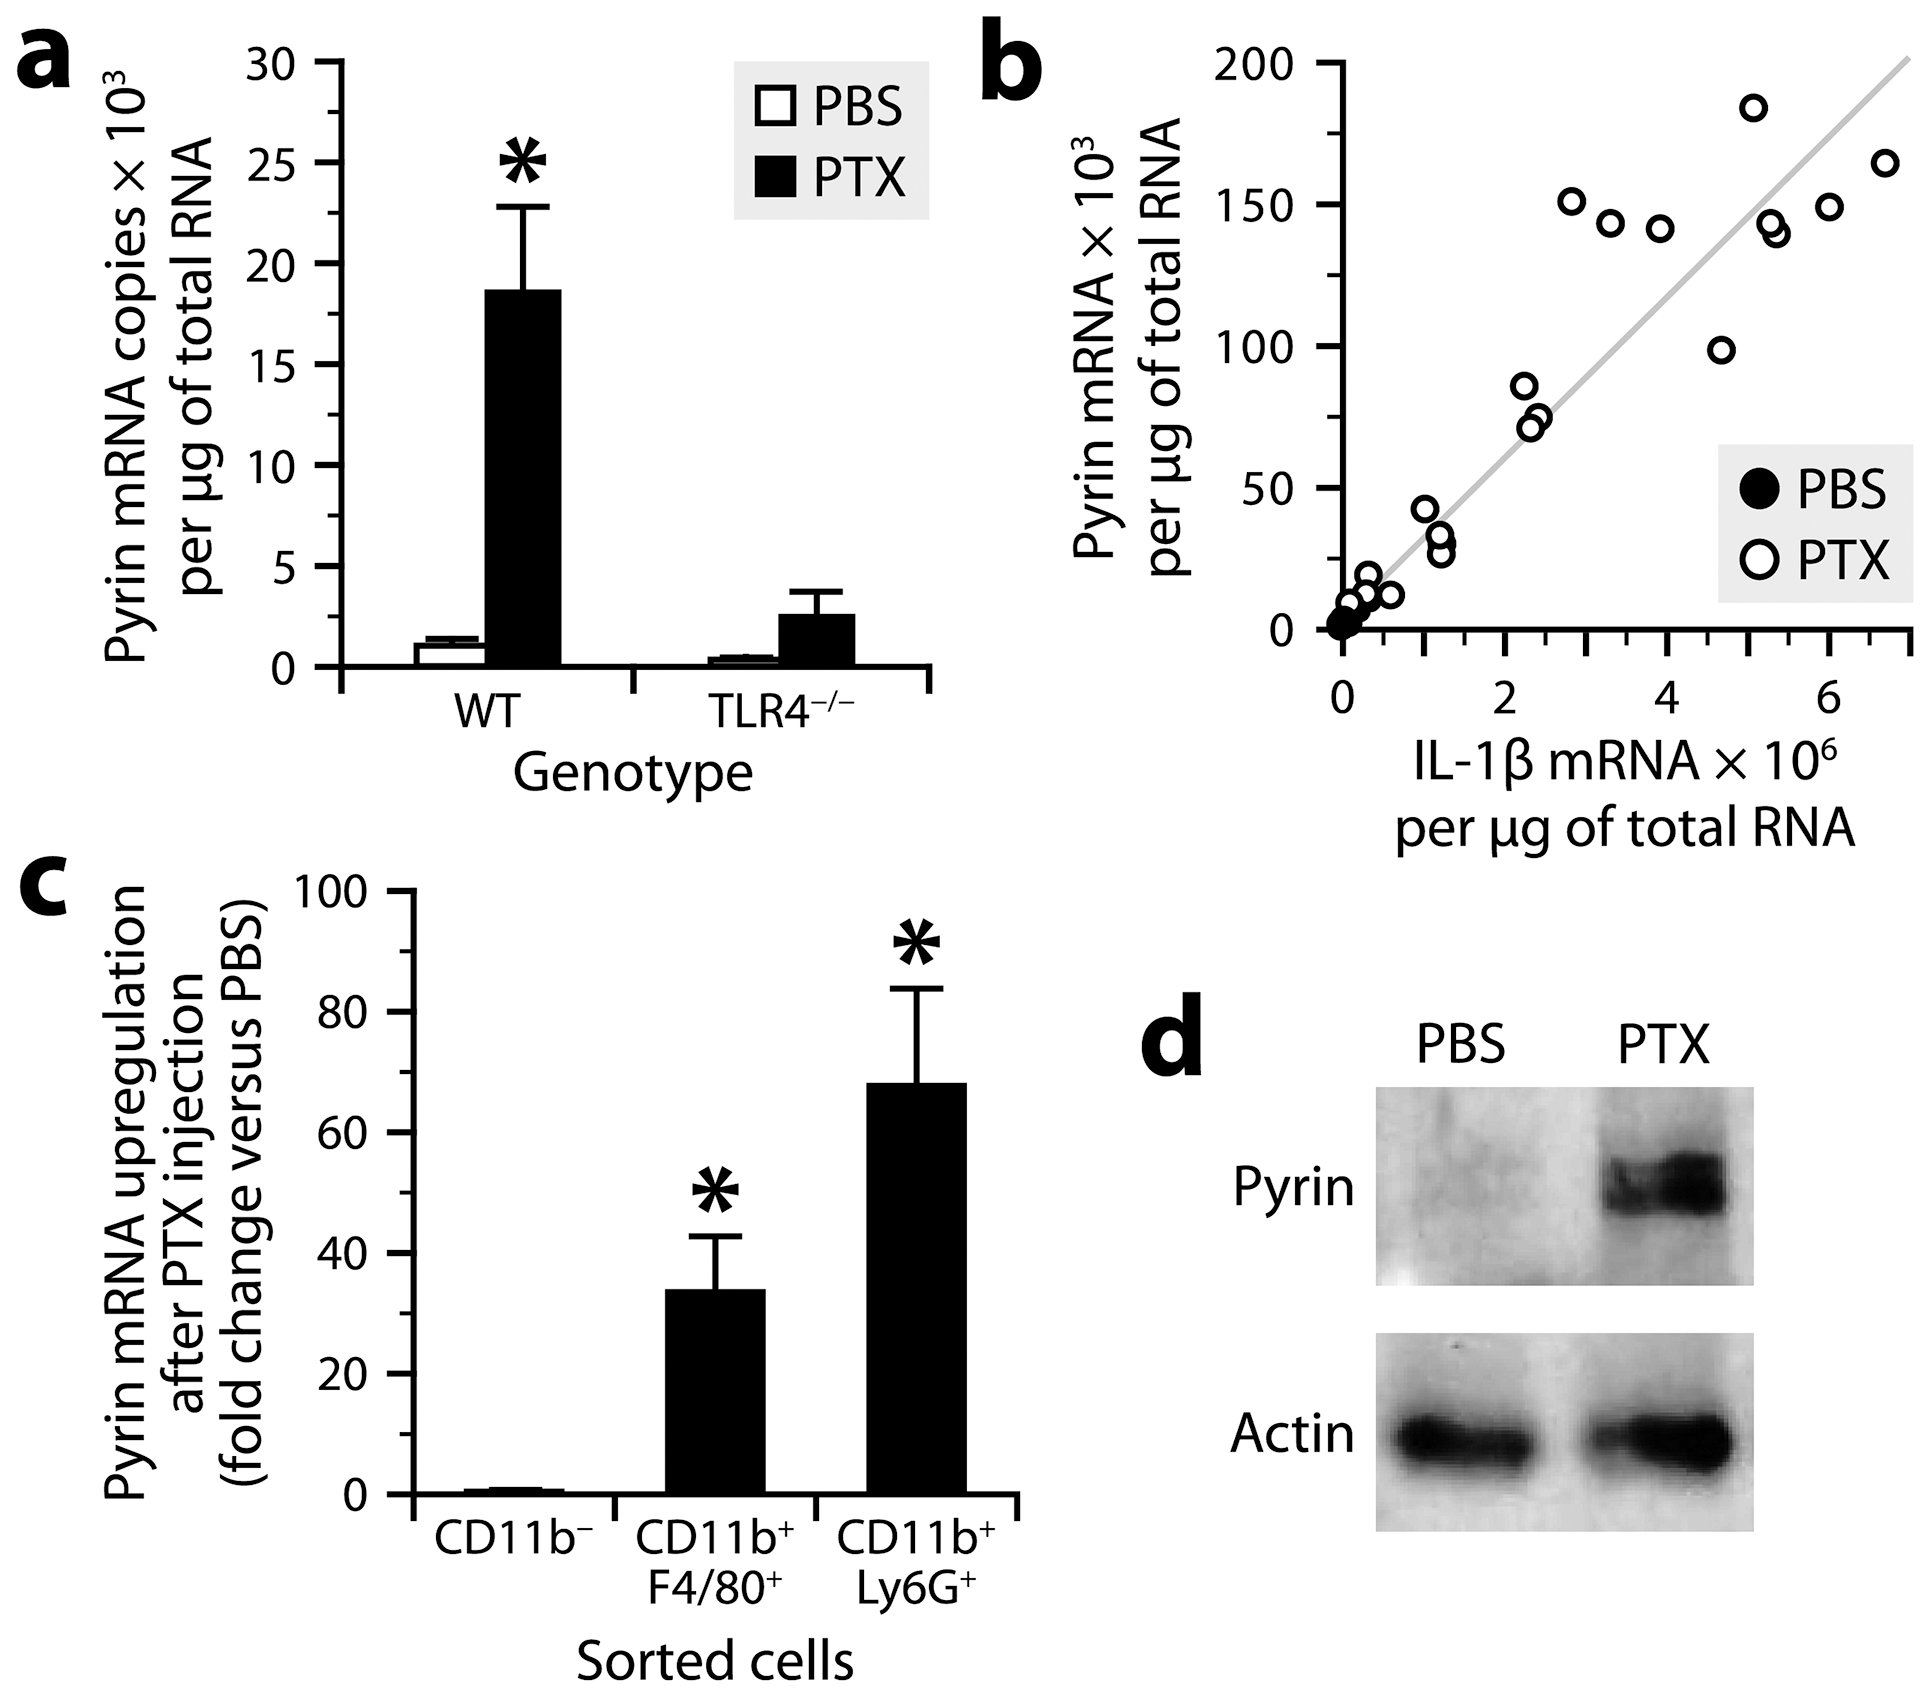 PTX increases pyrin expression in myeloid cells via a TLR4-dependent pathway.